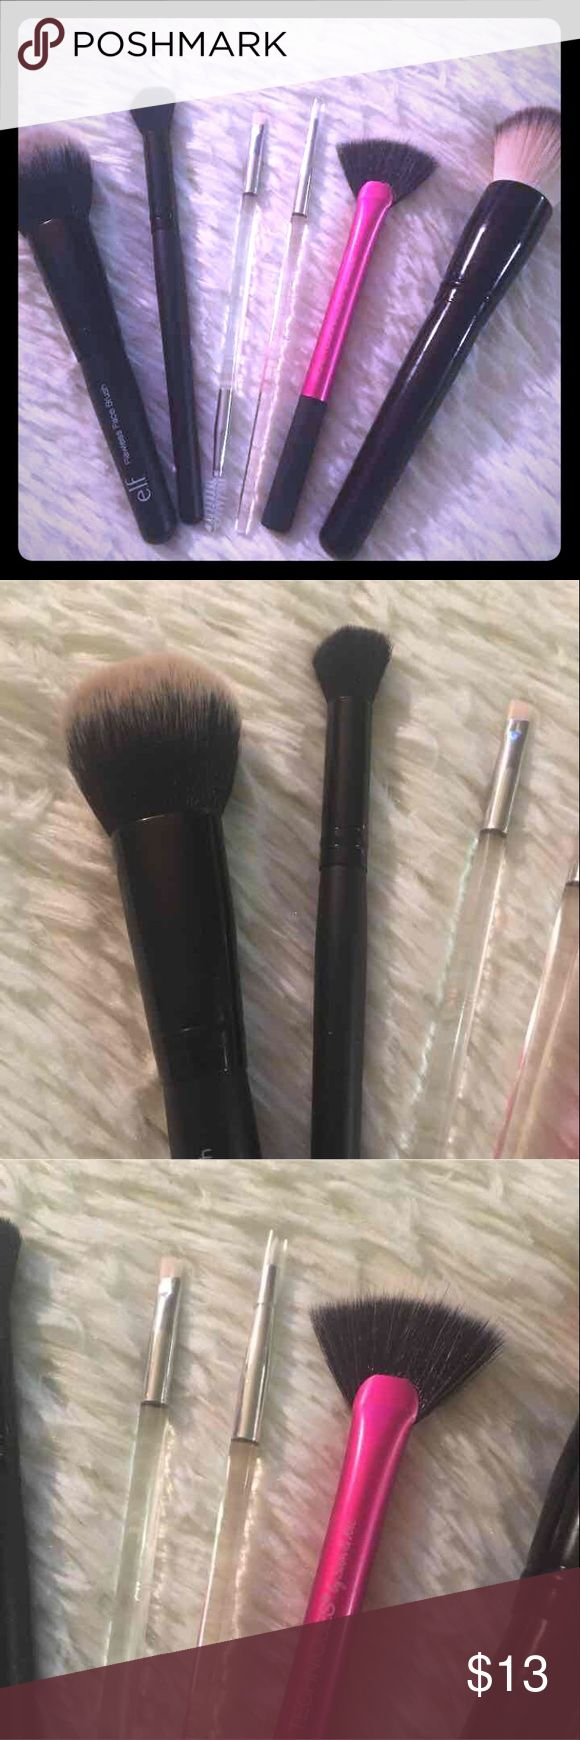 Make up brush bundle!!! 6 Piece Make up brush bundle!!! NEW!!! - coastal Scents flat topped face brush dual fiber - ELF flawless face brush -ELF flawless concealer brush - elf crystal beautifully precise dual ended eyebrow brush - elf crystal beautifully precise liner brush  - Real Techniques Fan Brush duo fiber ELF Makeup Brushes & Tools